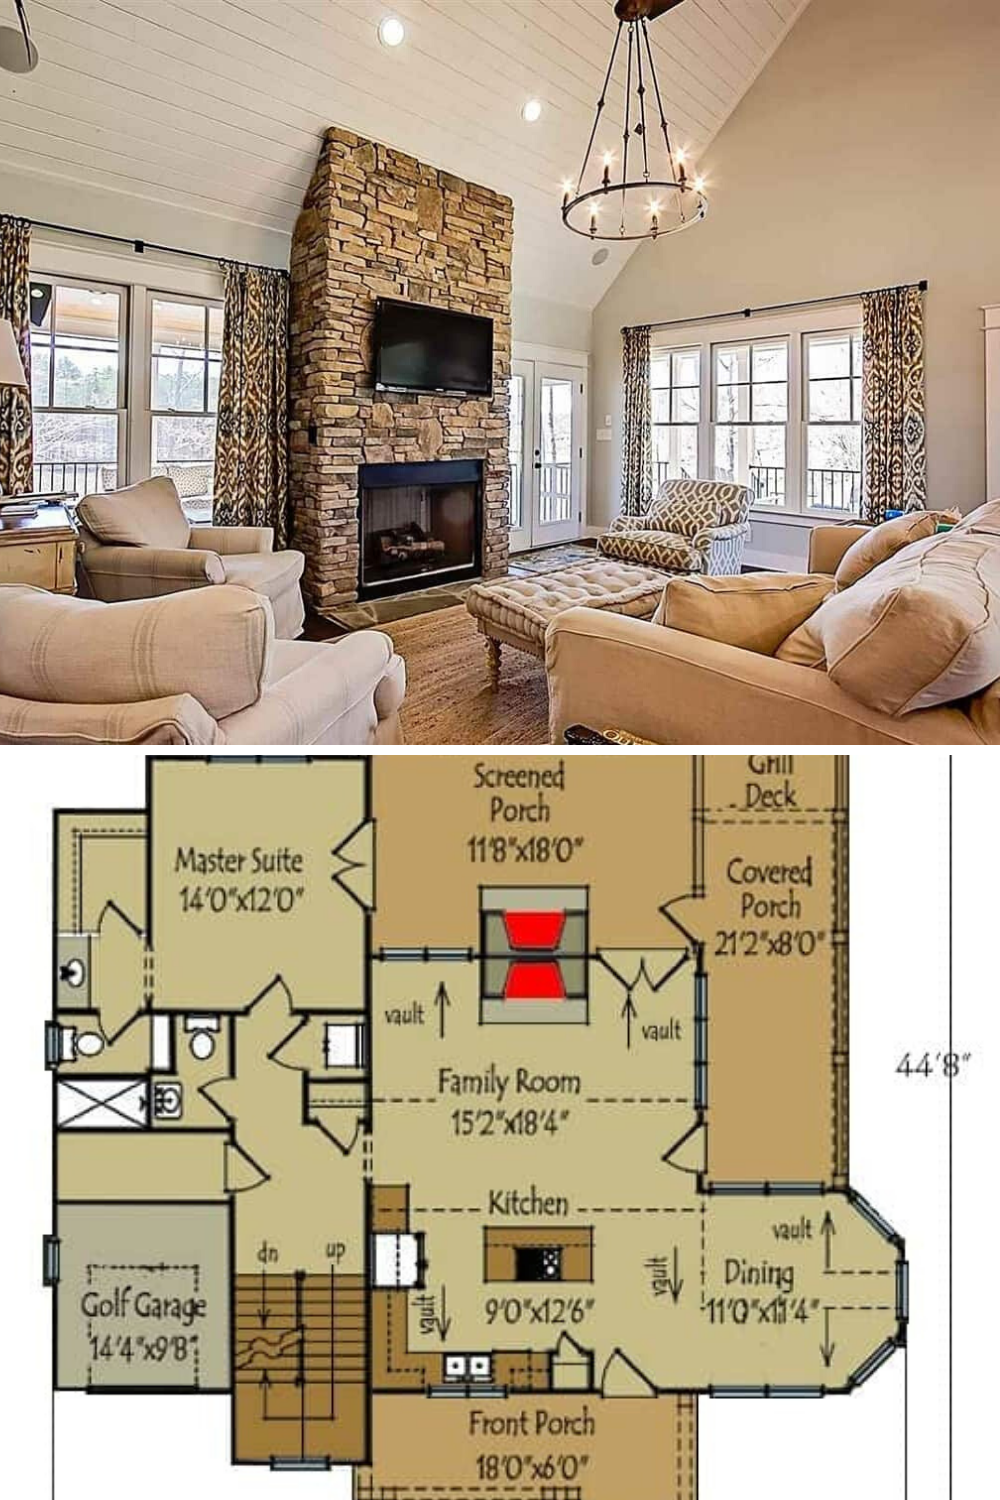 5 Bedroom Rustic 2 Story Mountain Home With Vaulted Ceilings Floor Plan Vaulted Ceiling Living Room Porch House Plans Mansion Floor Plan